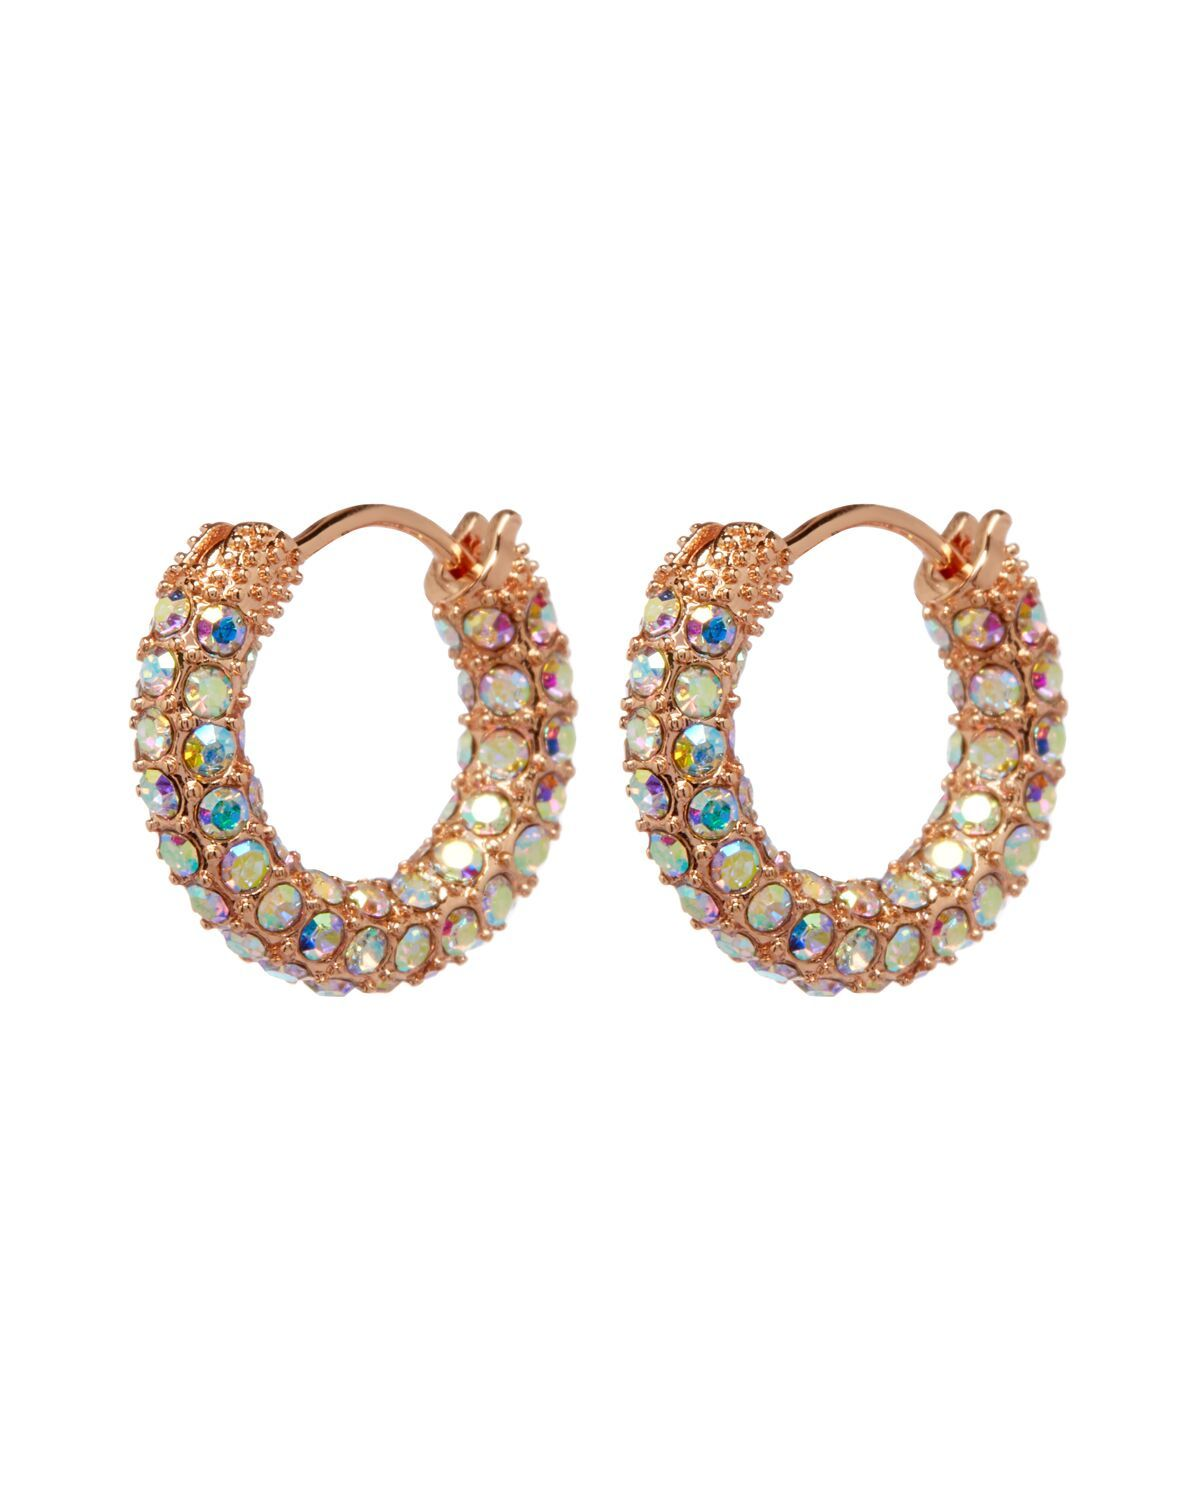 Luv AJ Pave Amalfi Huggies in Rose Gold & Rainbow Crystal